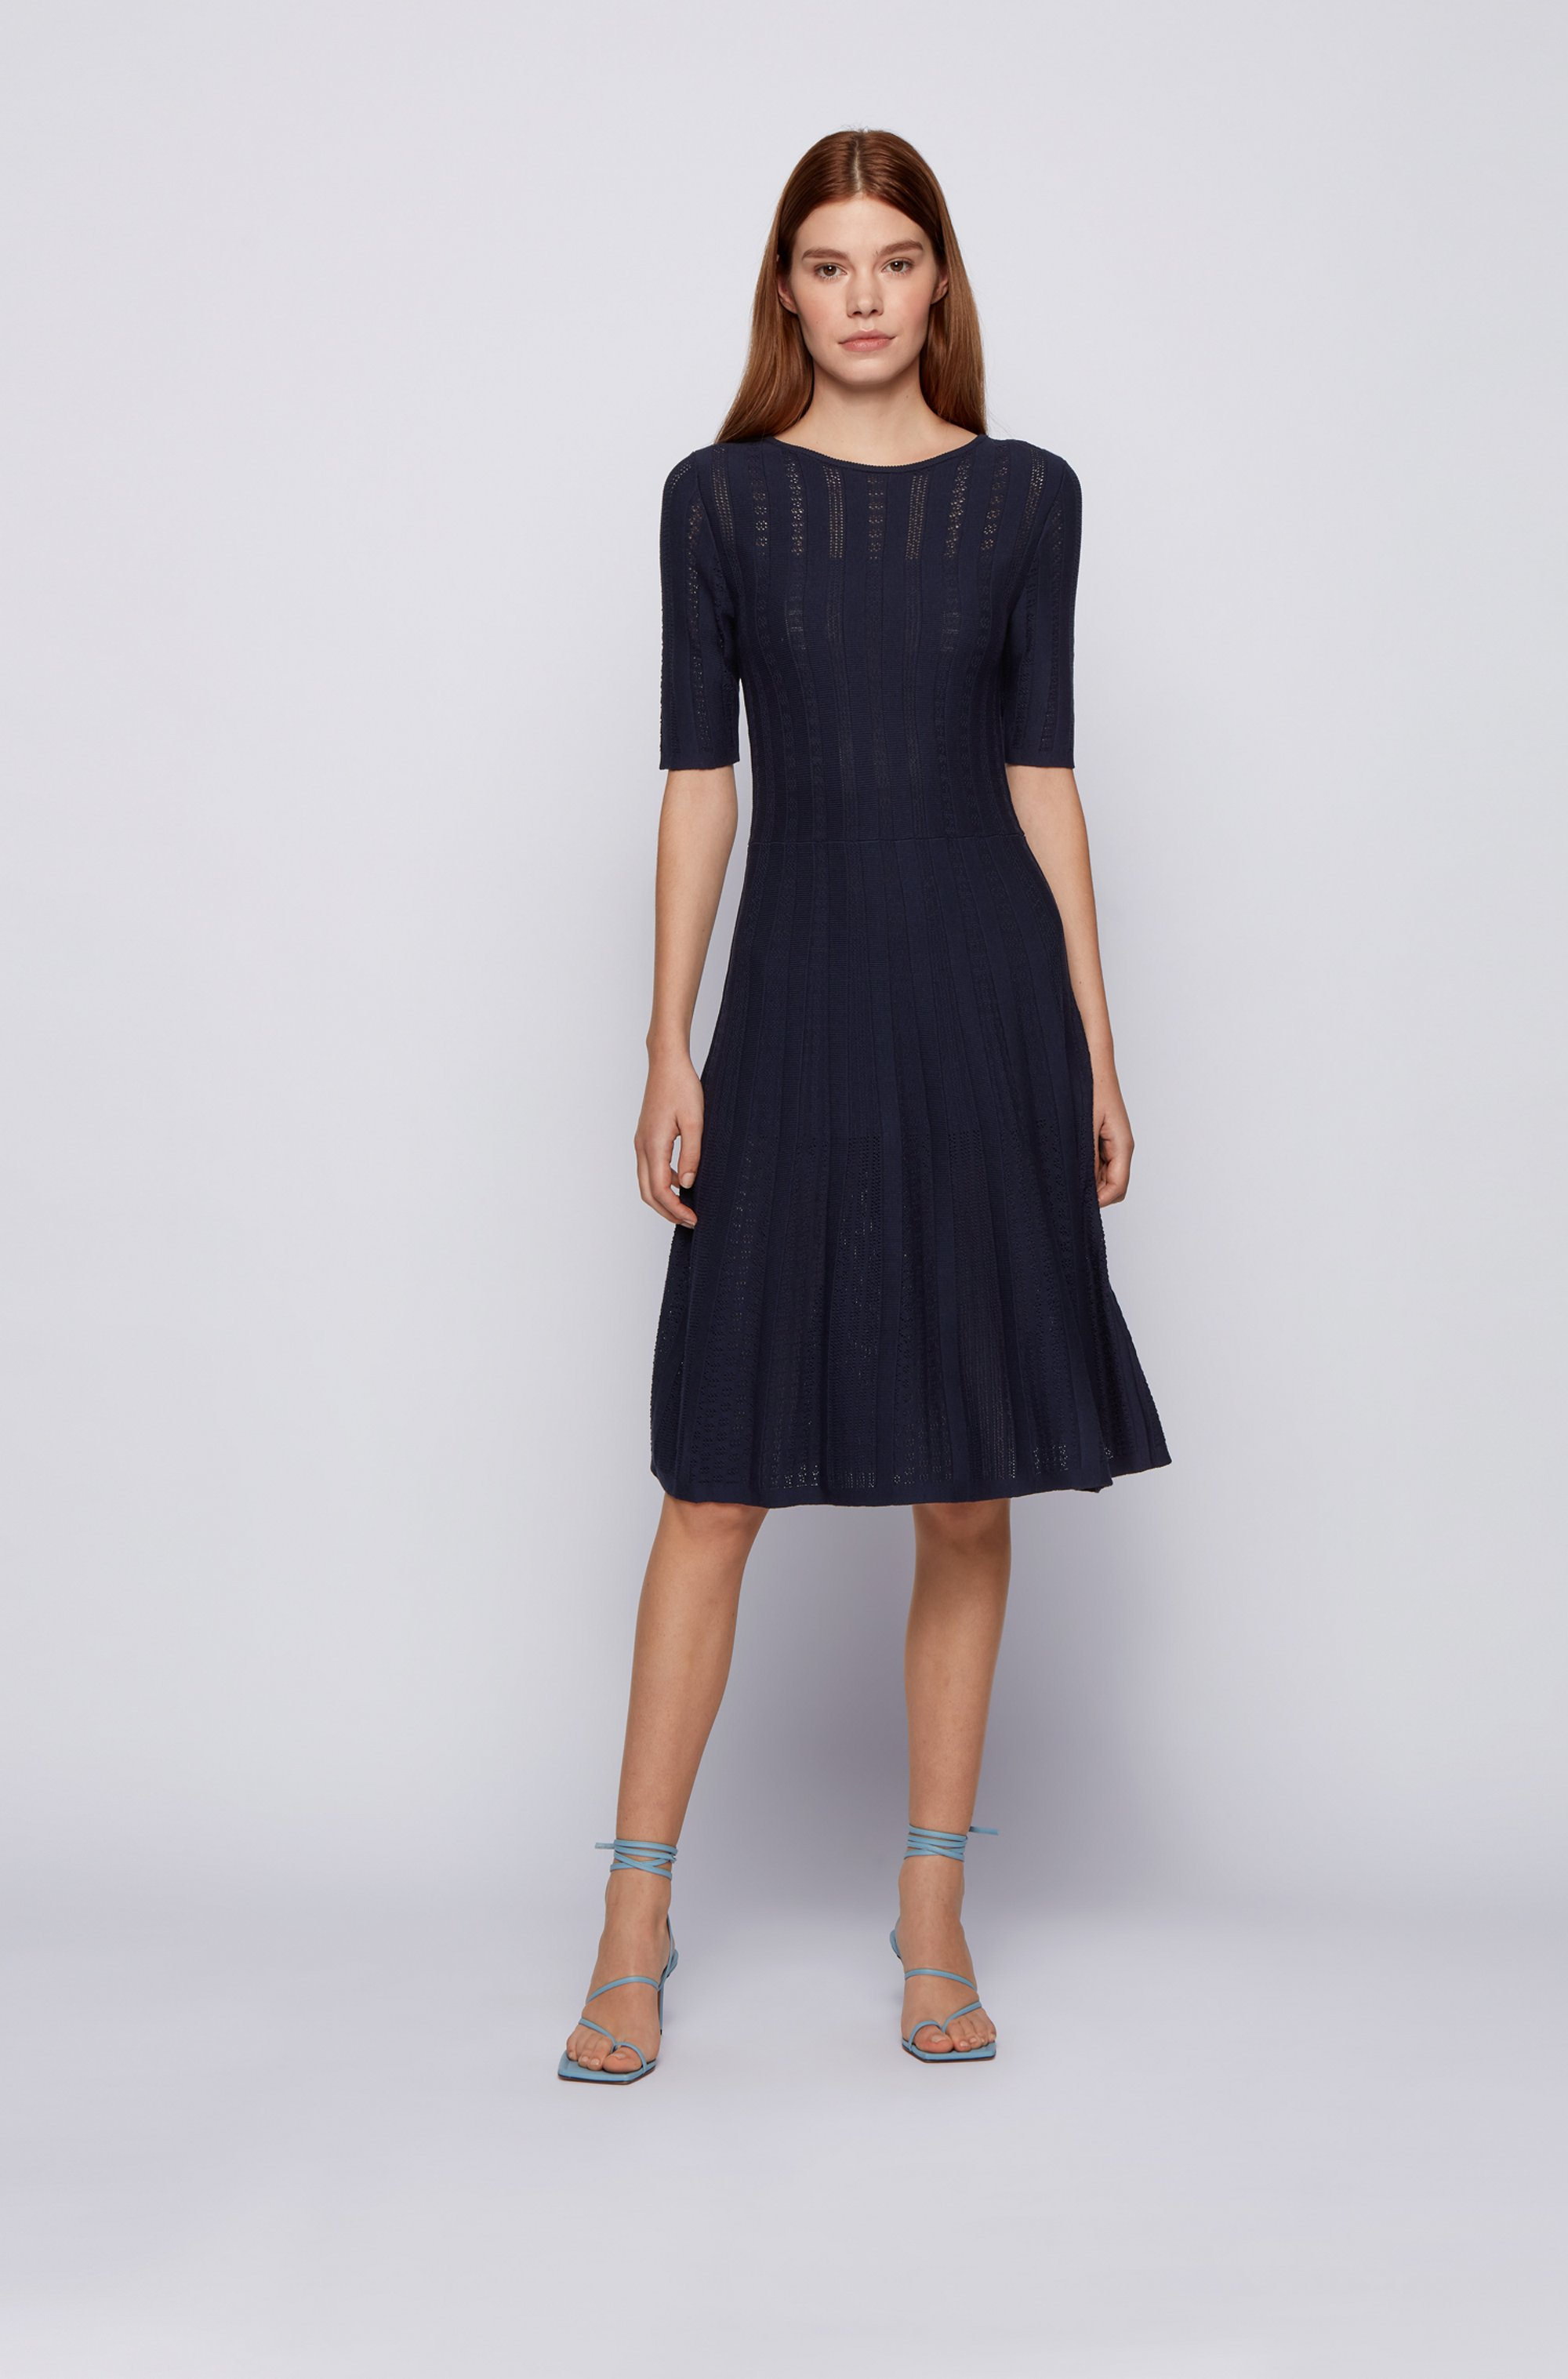 Wide-neck knitted dress with three-quarter sleeves